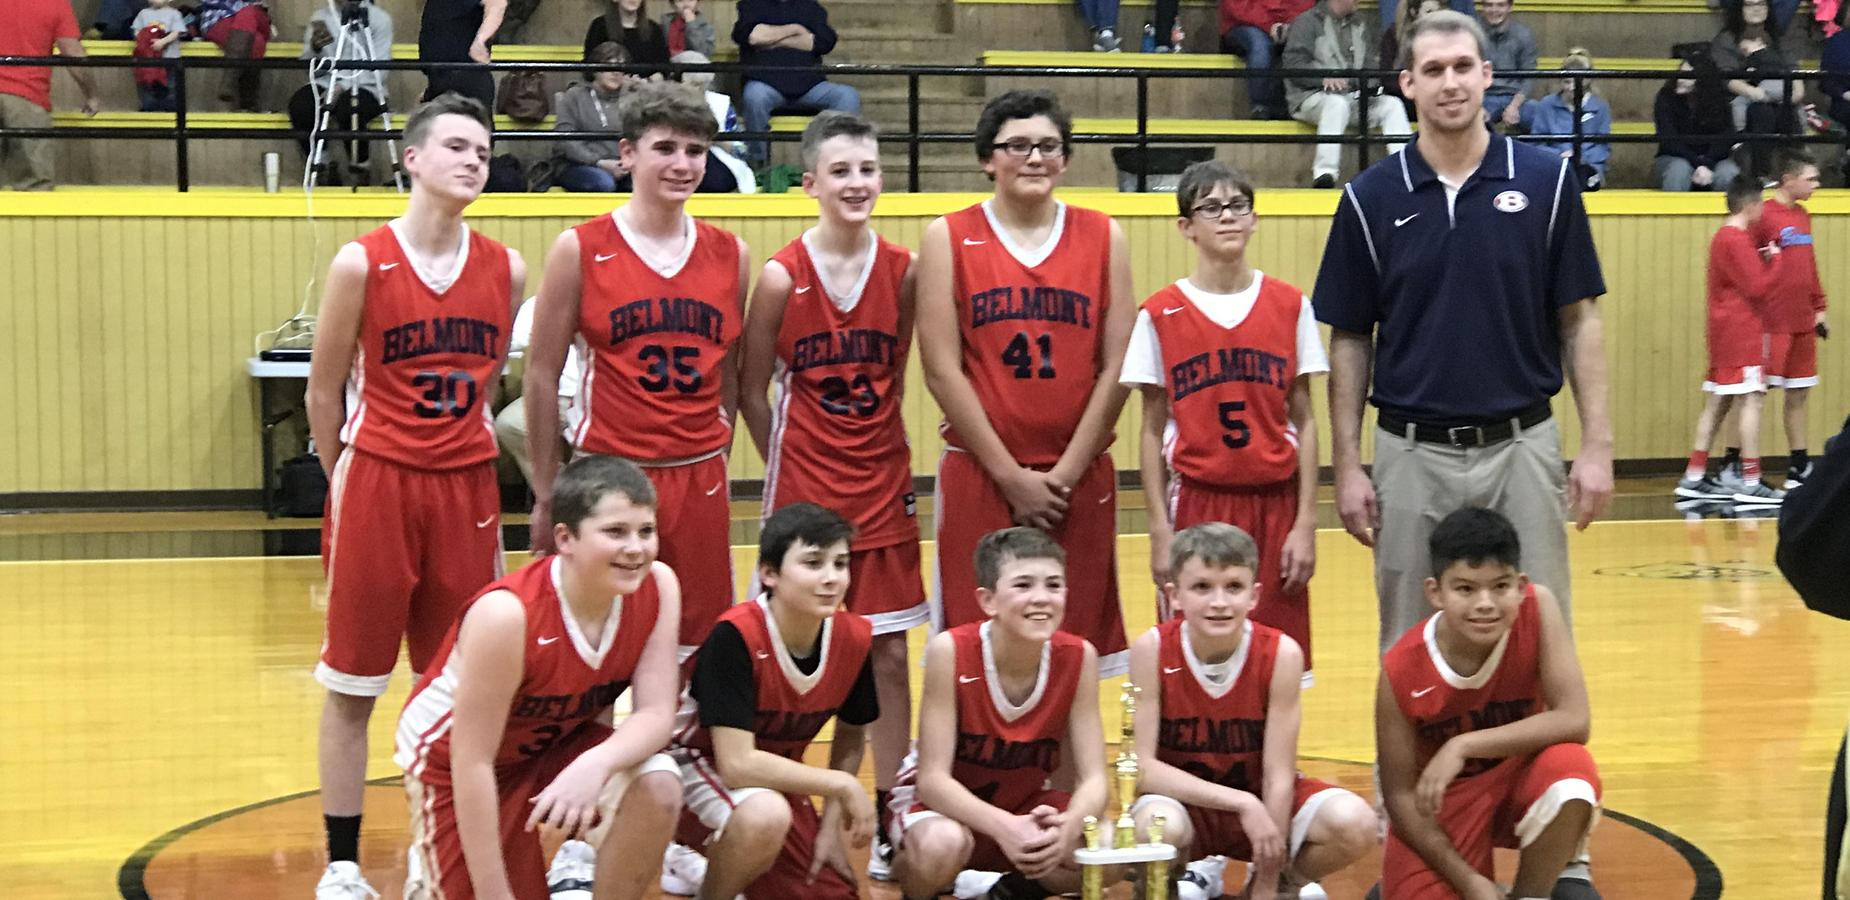 Belmont Boys win 7th Grade County Tournament